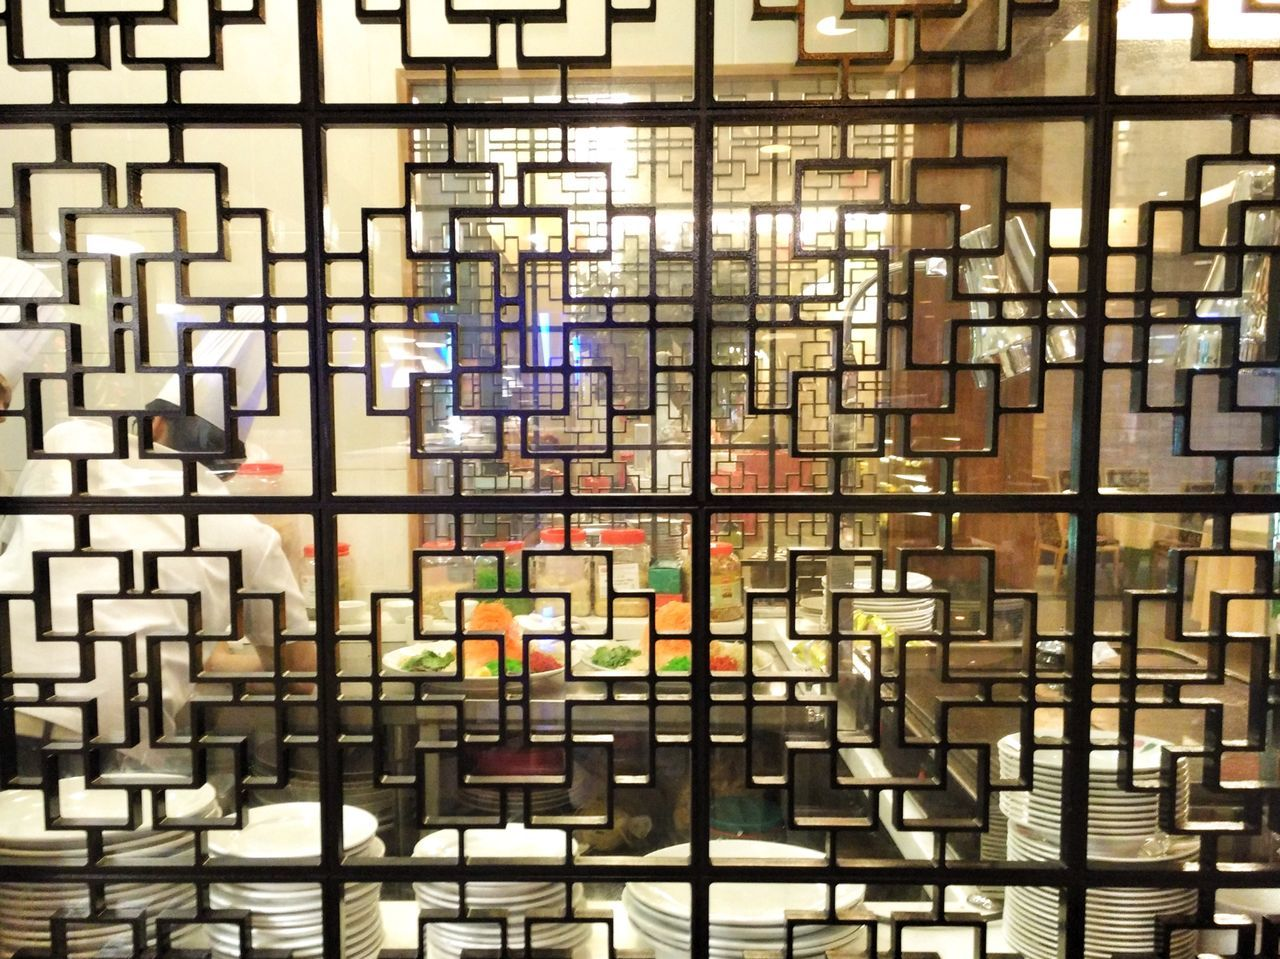 Full Frame Backgrounds Pattern Multi Colored Indoors  Architecture Building Structures Grills Patterns Chinese Patterns Kitchen Kitchen Grills See Through Through Shapes And Lines Shapes And Patterns  Shapes , Lines , Forms & Composition